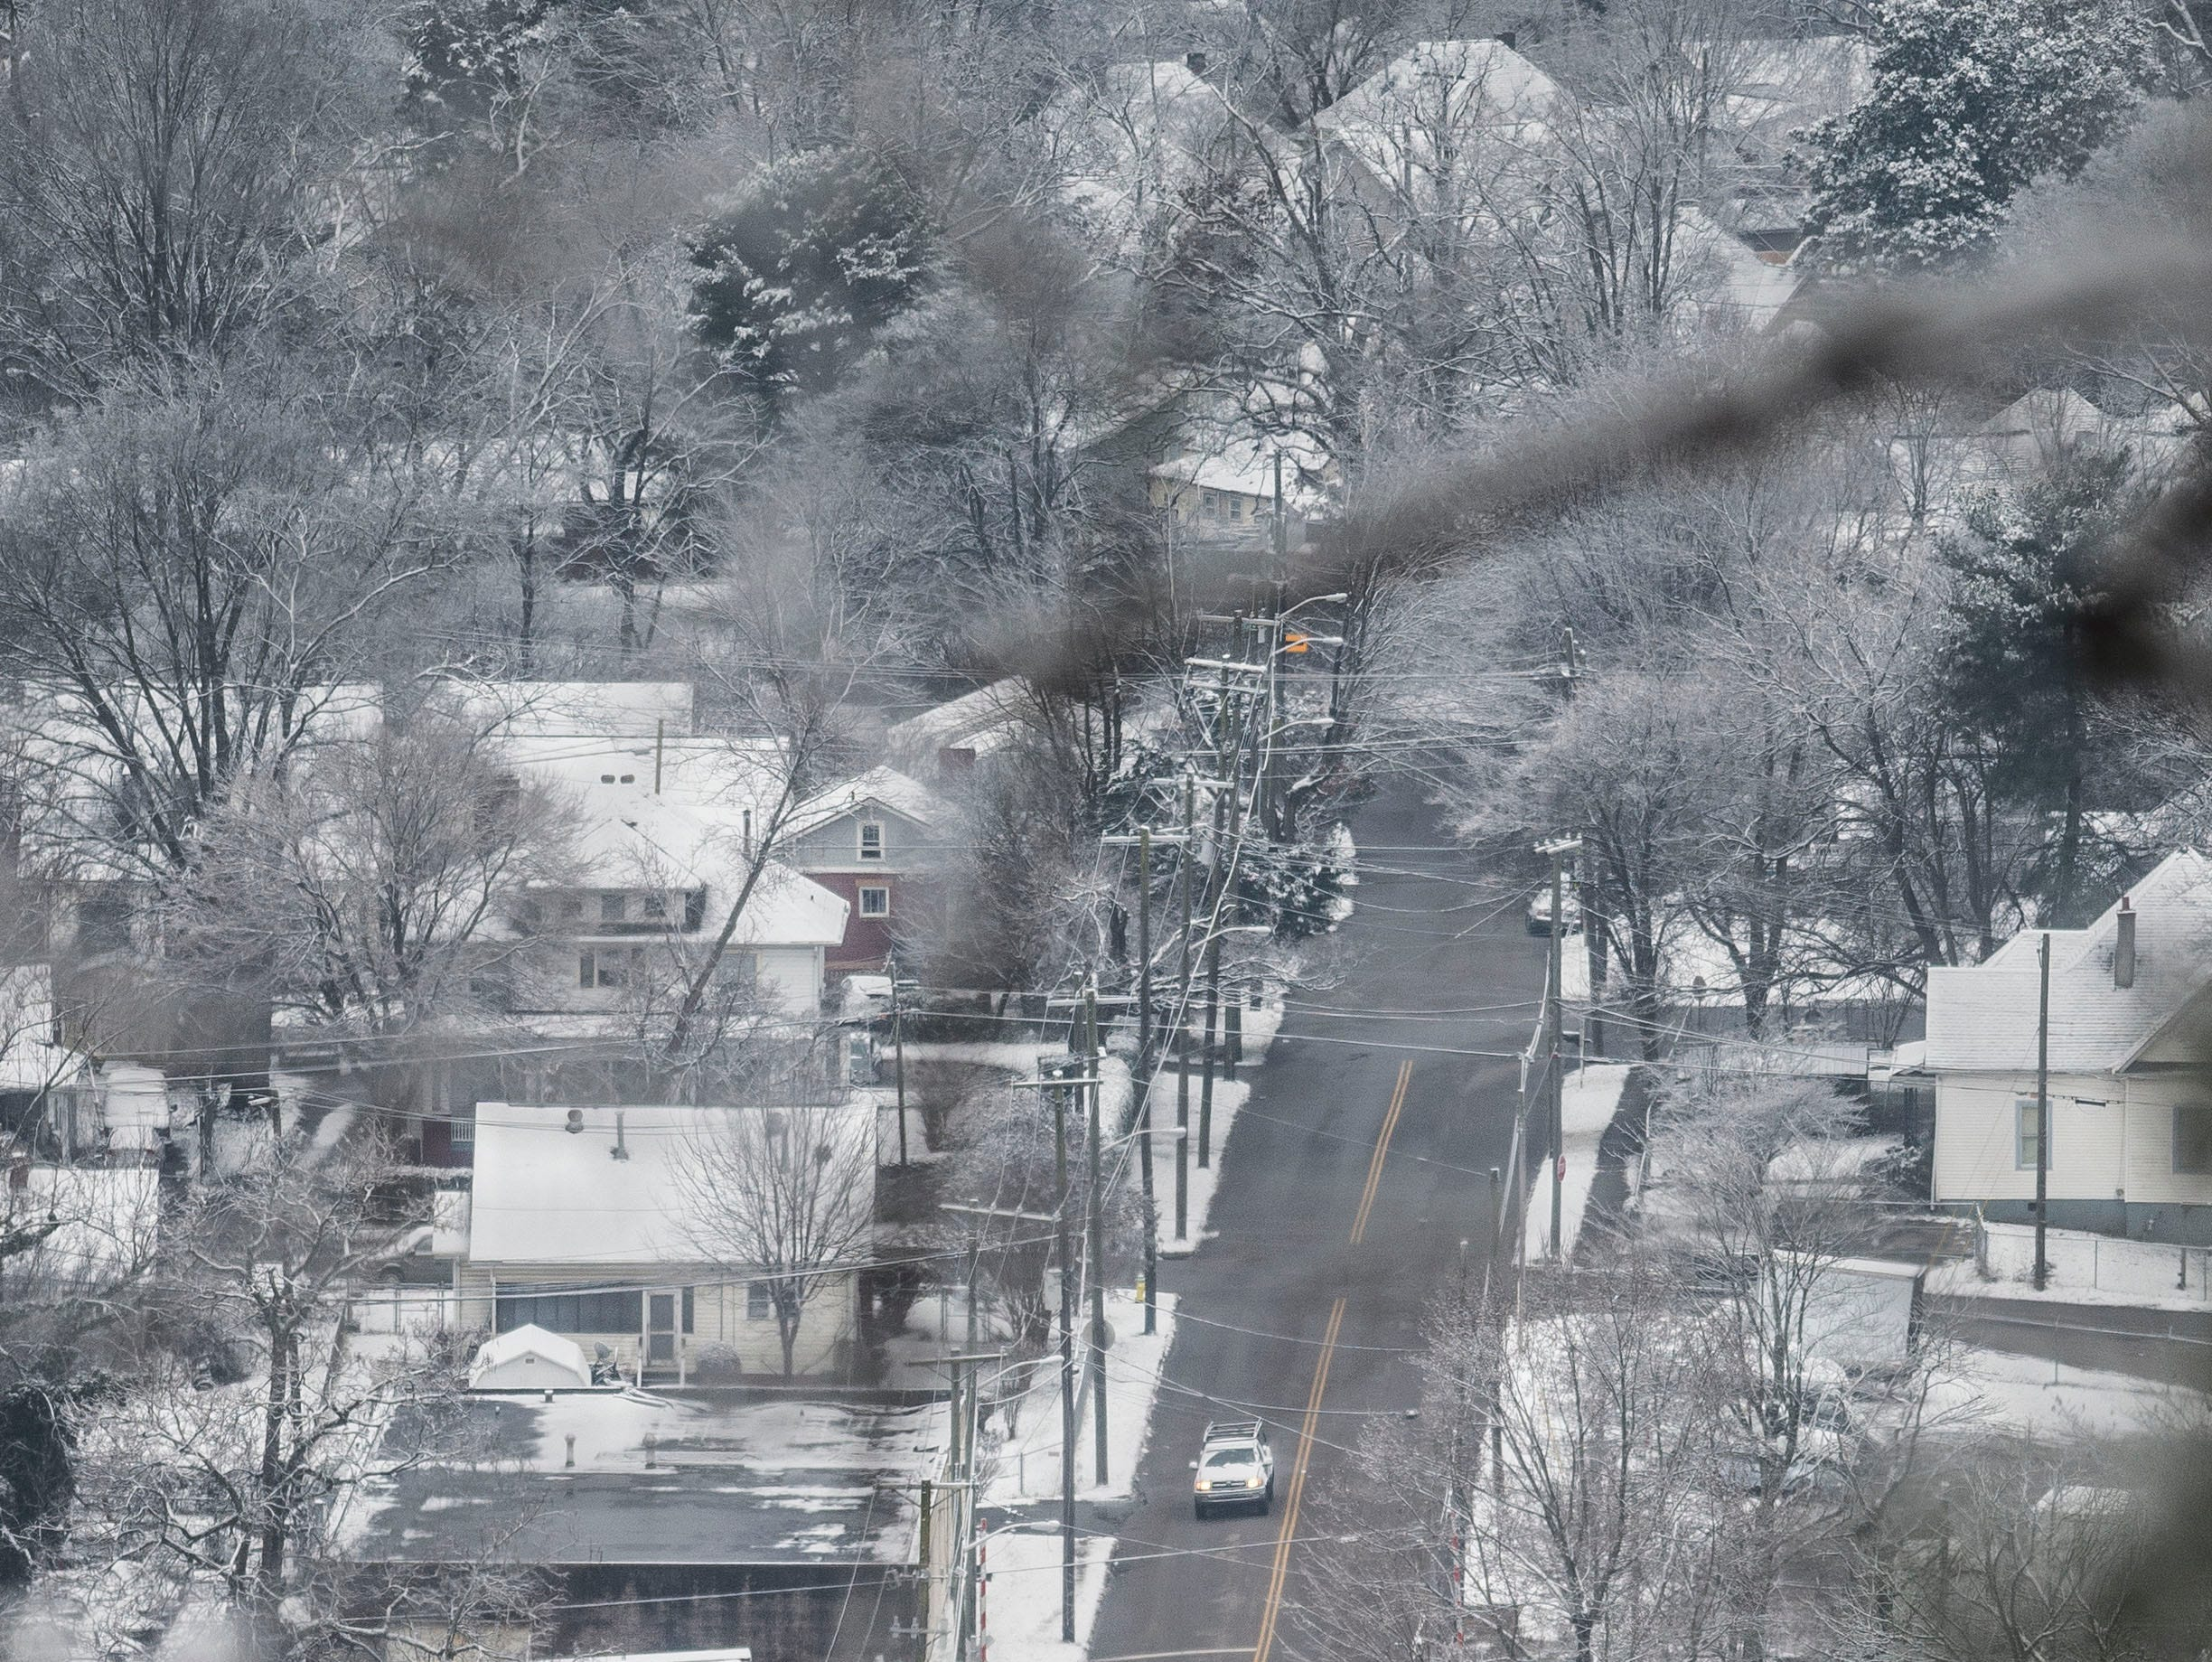 Vehicles drive down Pershing Street in the Oakwood-Lincoln Park neighborhood, as seen from Sharps Ridge in North Knoxville Tuesday, Jan 29, 2019. The Knoxville area received about an inch of snow.